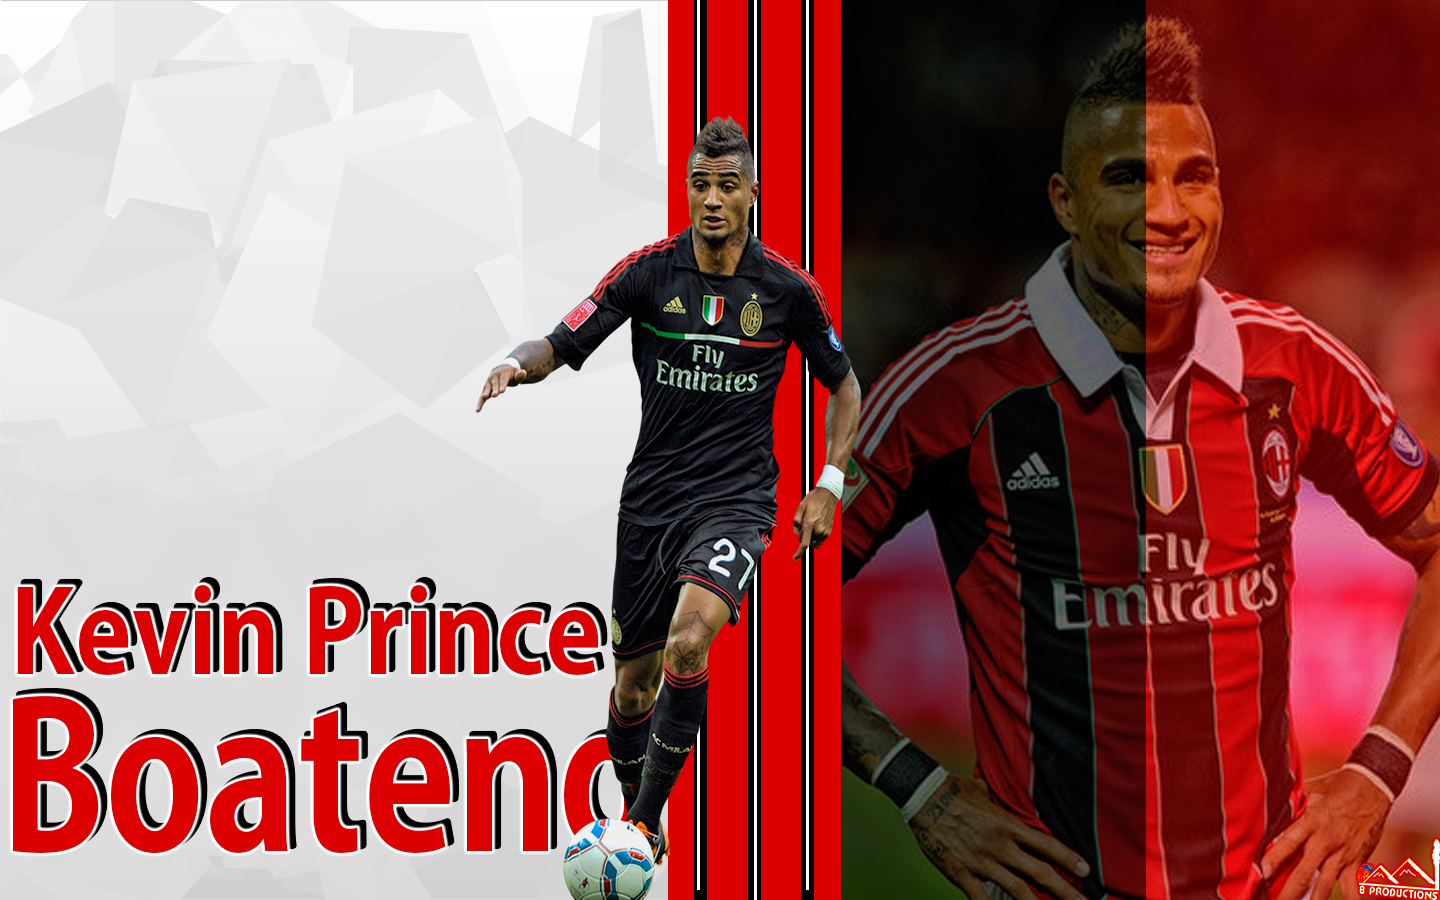 download Kevin Prince Boateng HD Wallpaper WallpaperCowcom 1440x900